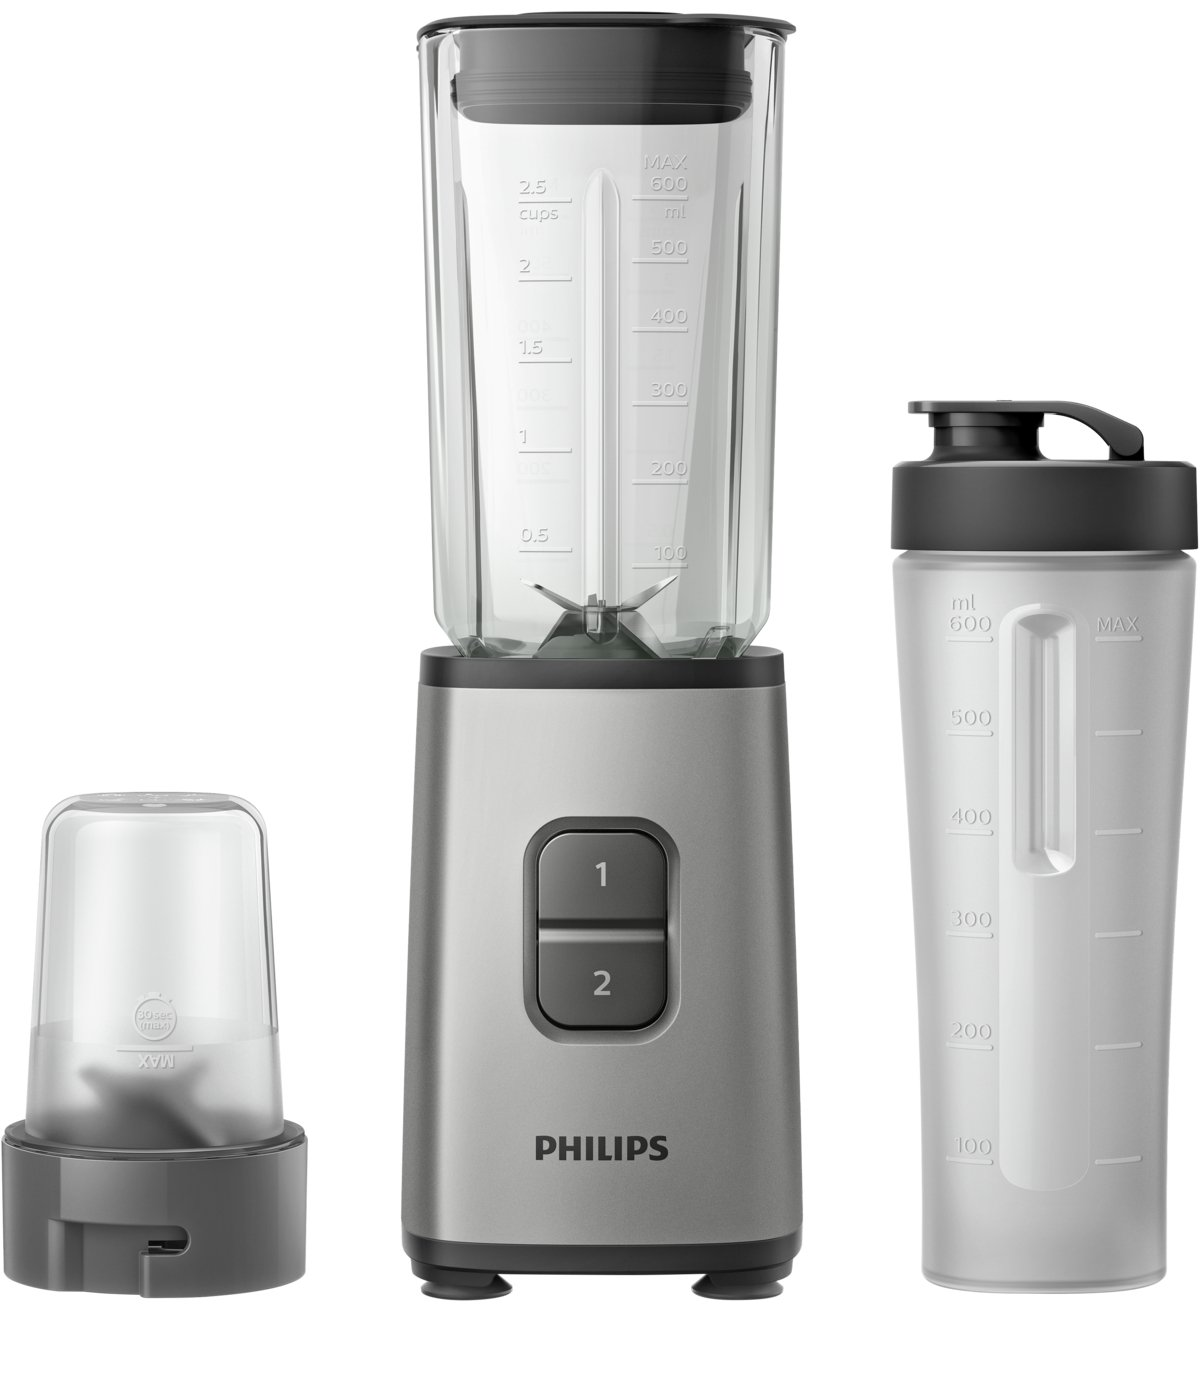 Philips HR2605/81 Daily Mini Blender - Stainless Steel